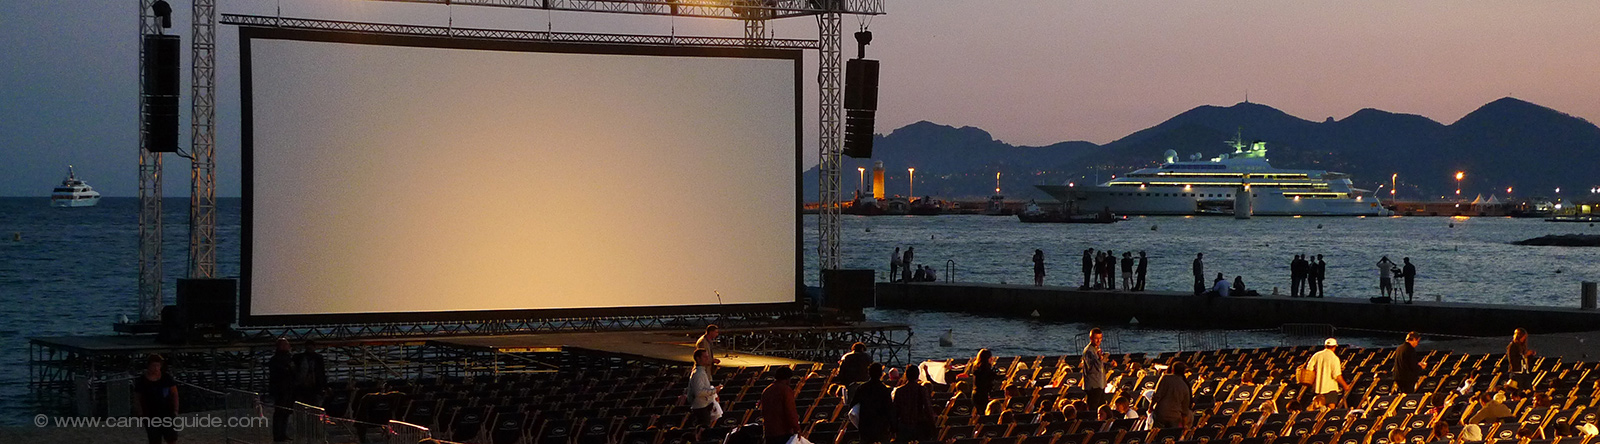 Cinema de la Plage, Cannes